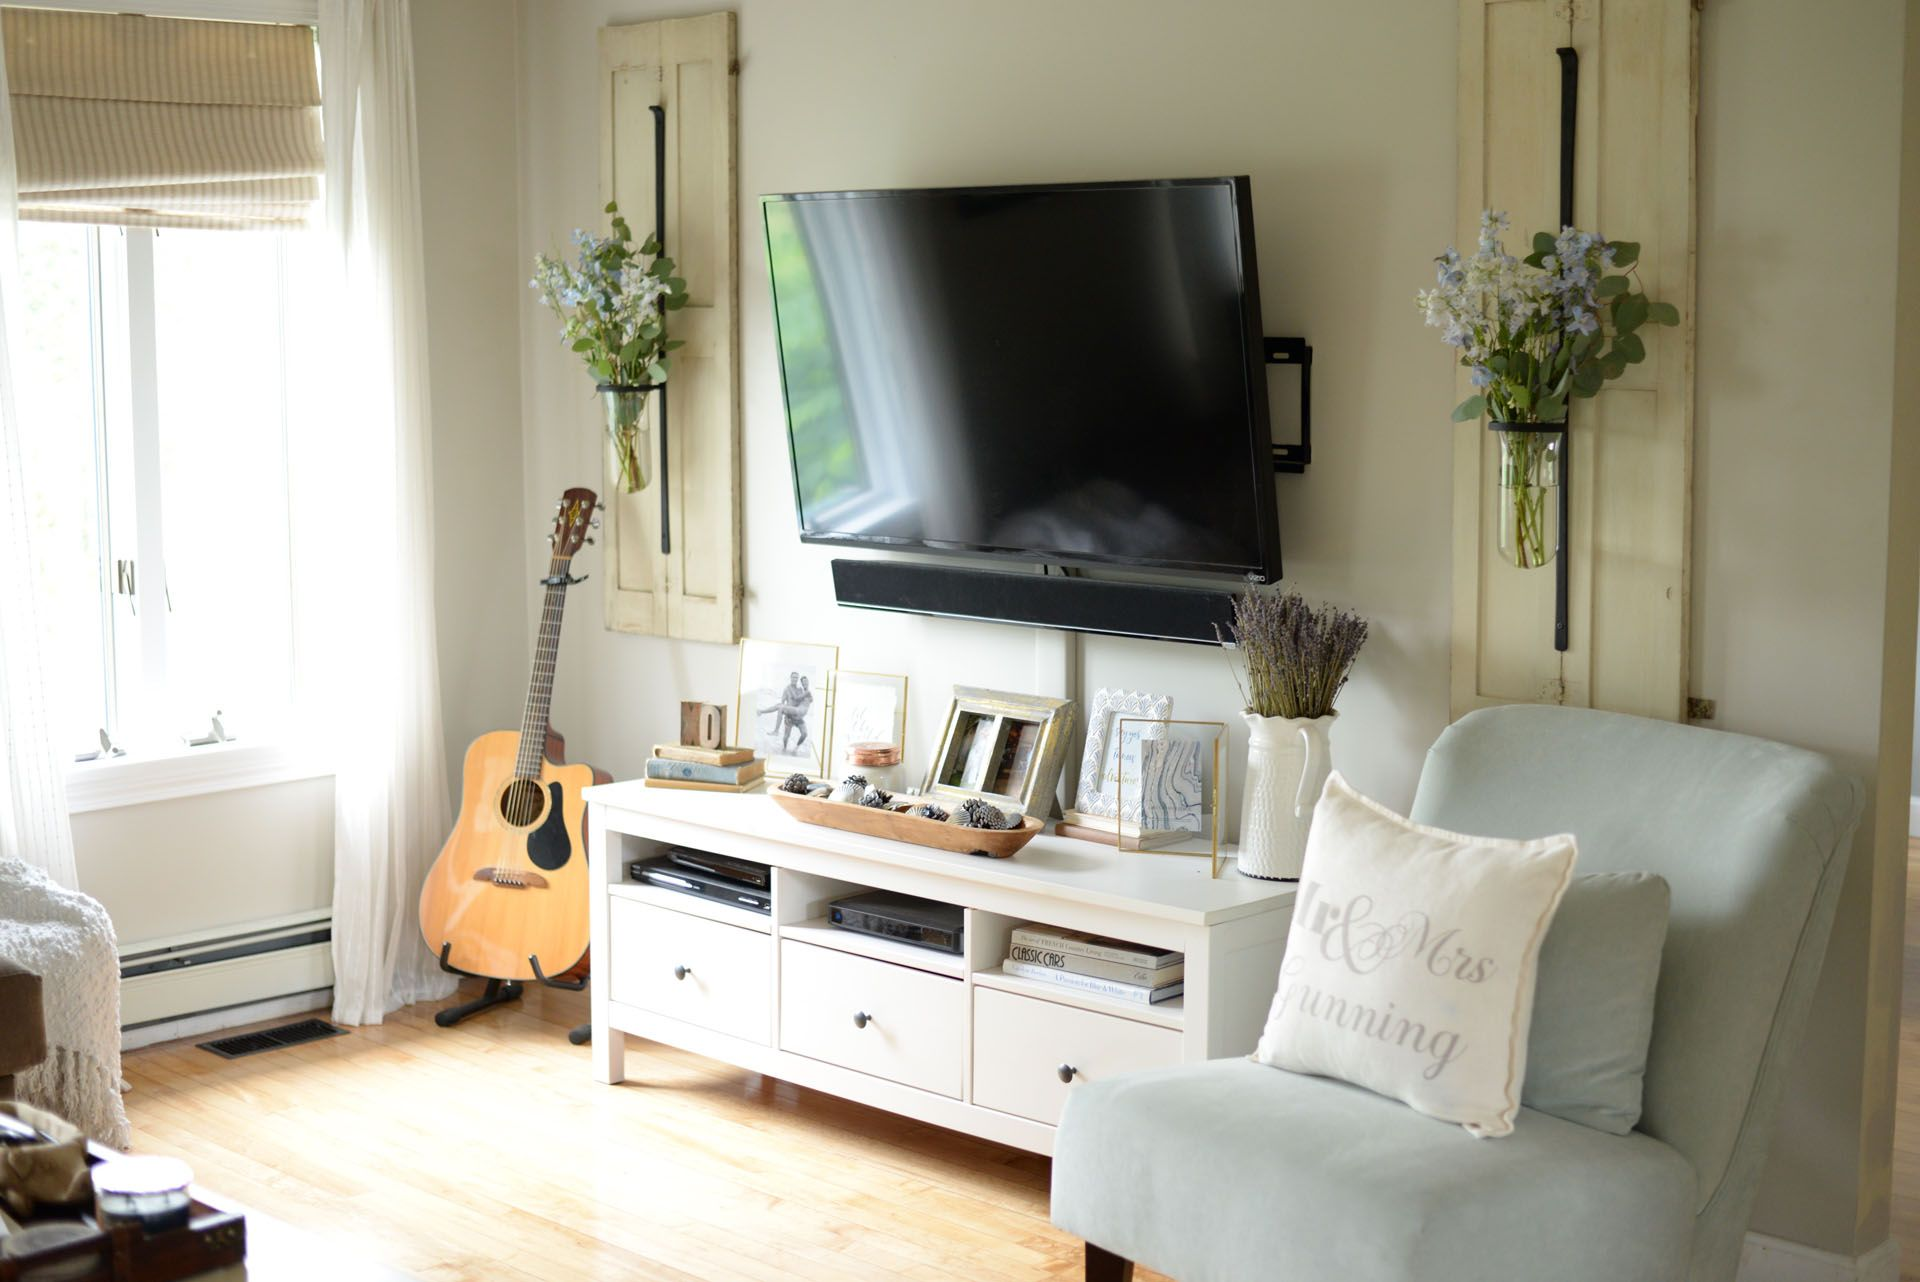 How To Decorate Around Your TV Like A Pro